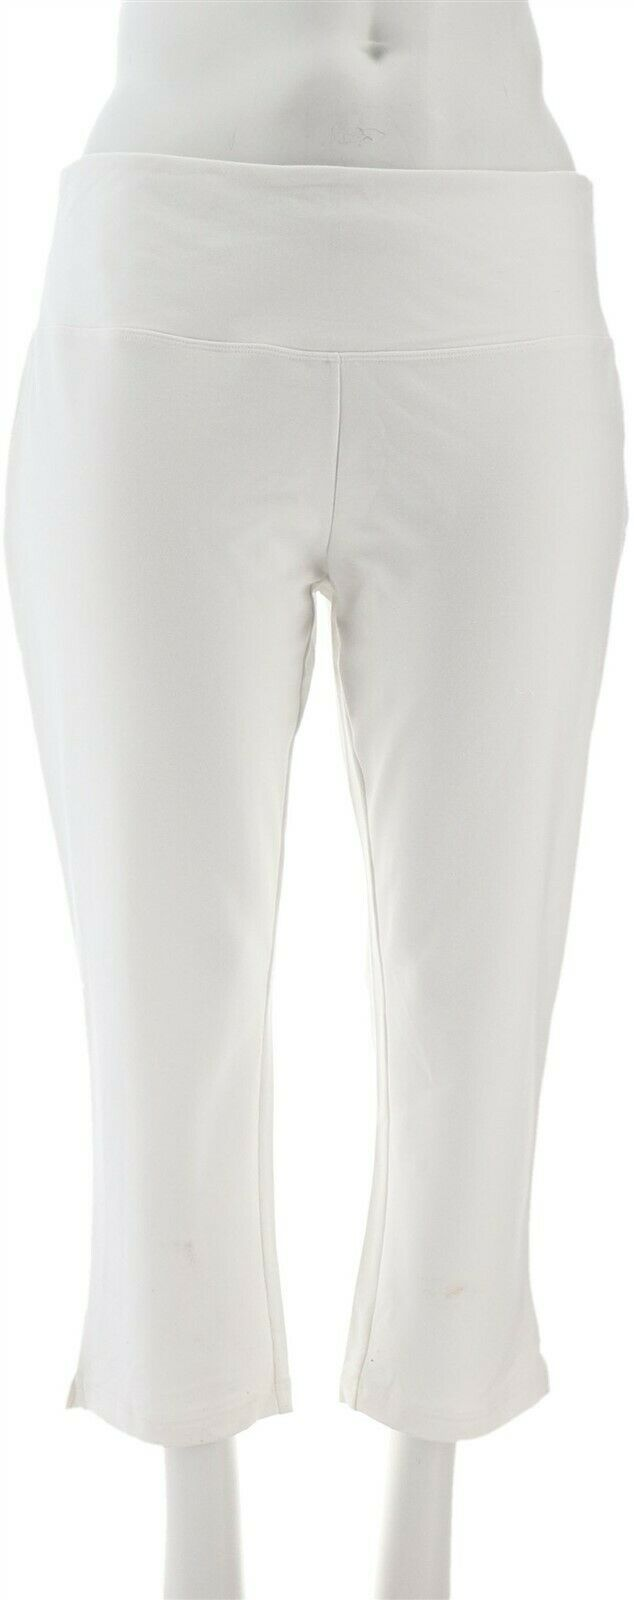 Belle Kim Gravel Knit Pull-On Crop Leggings White M NEW A288974